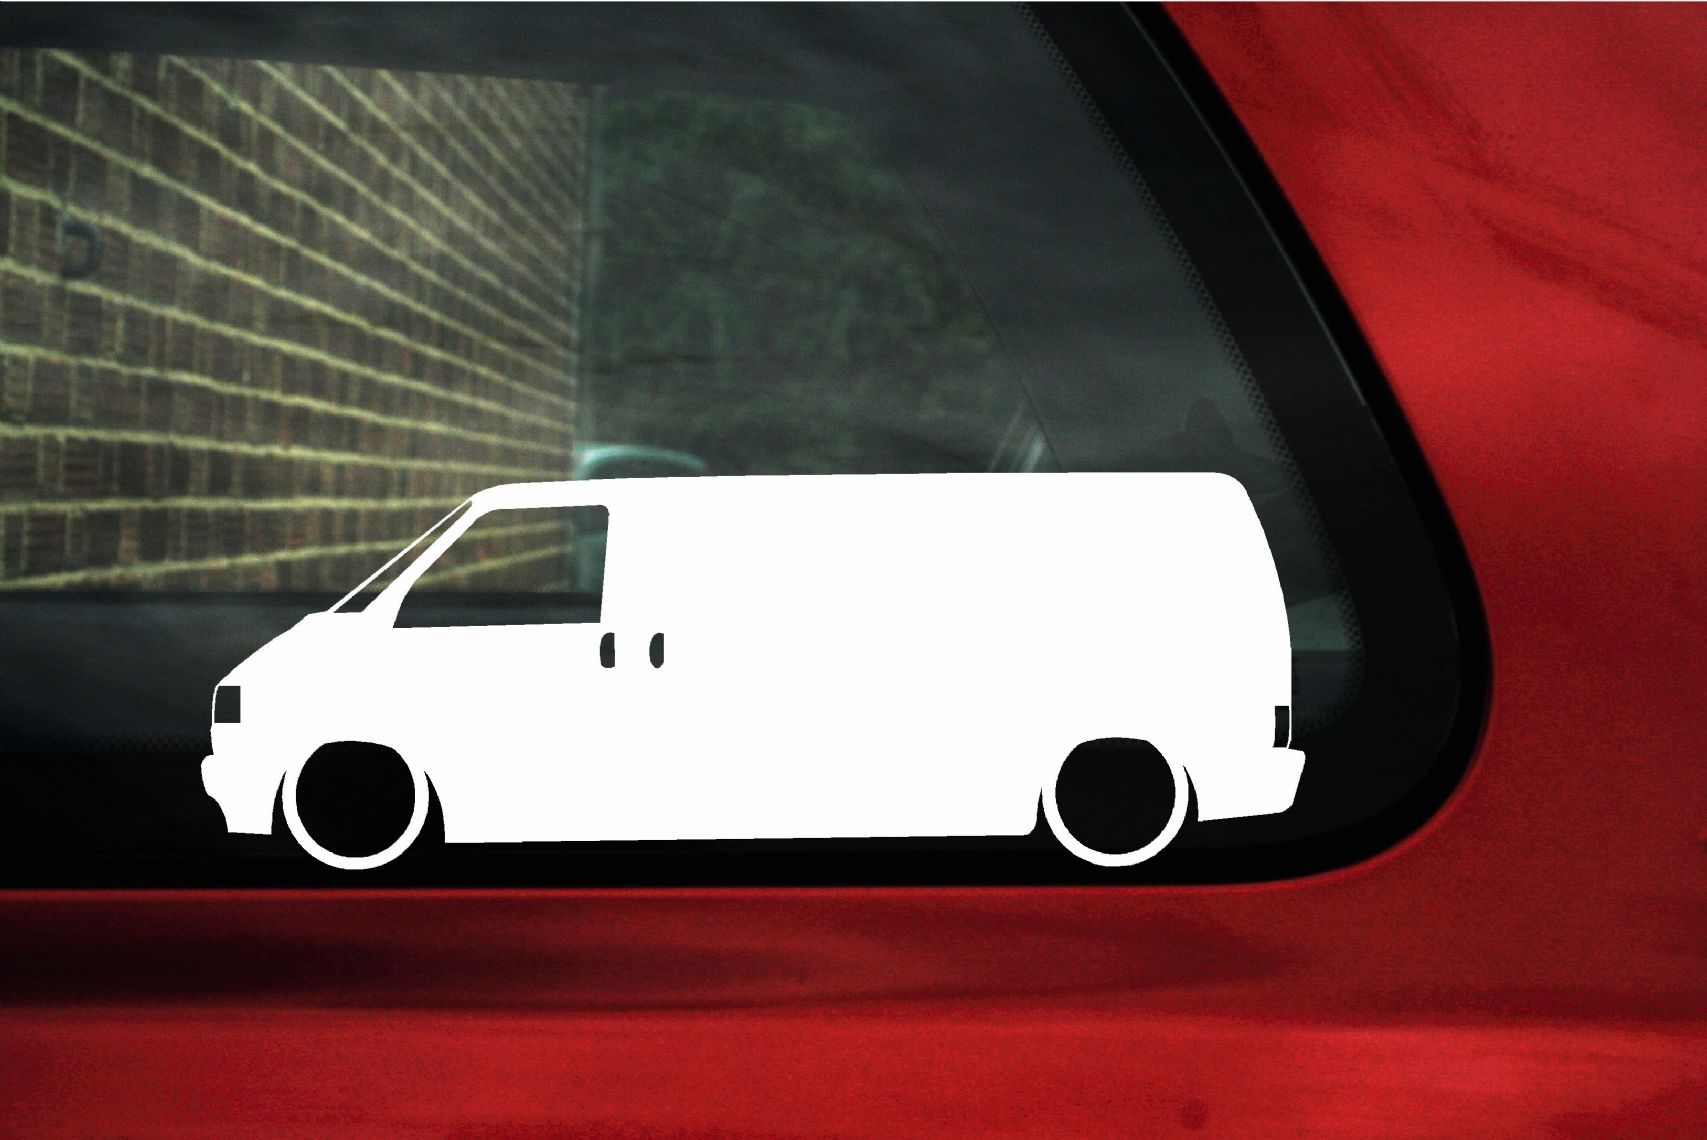 2x Low Vw T4 Transporter Tdi Van Outline Stickers Decals